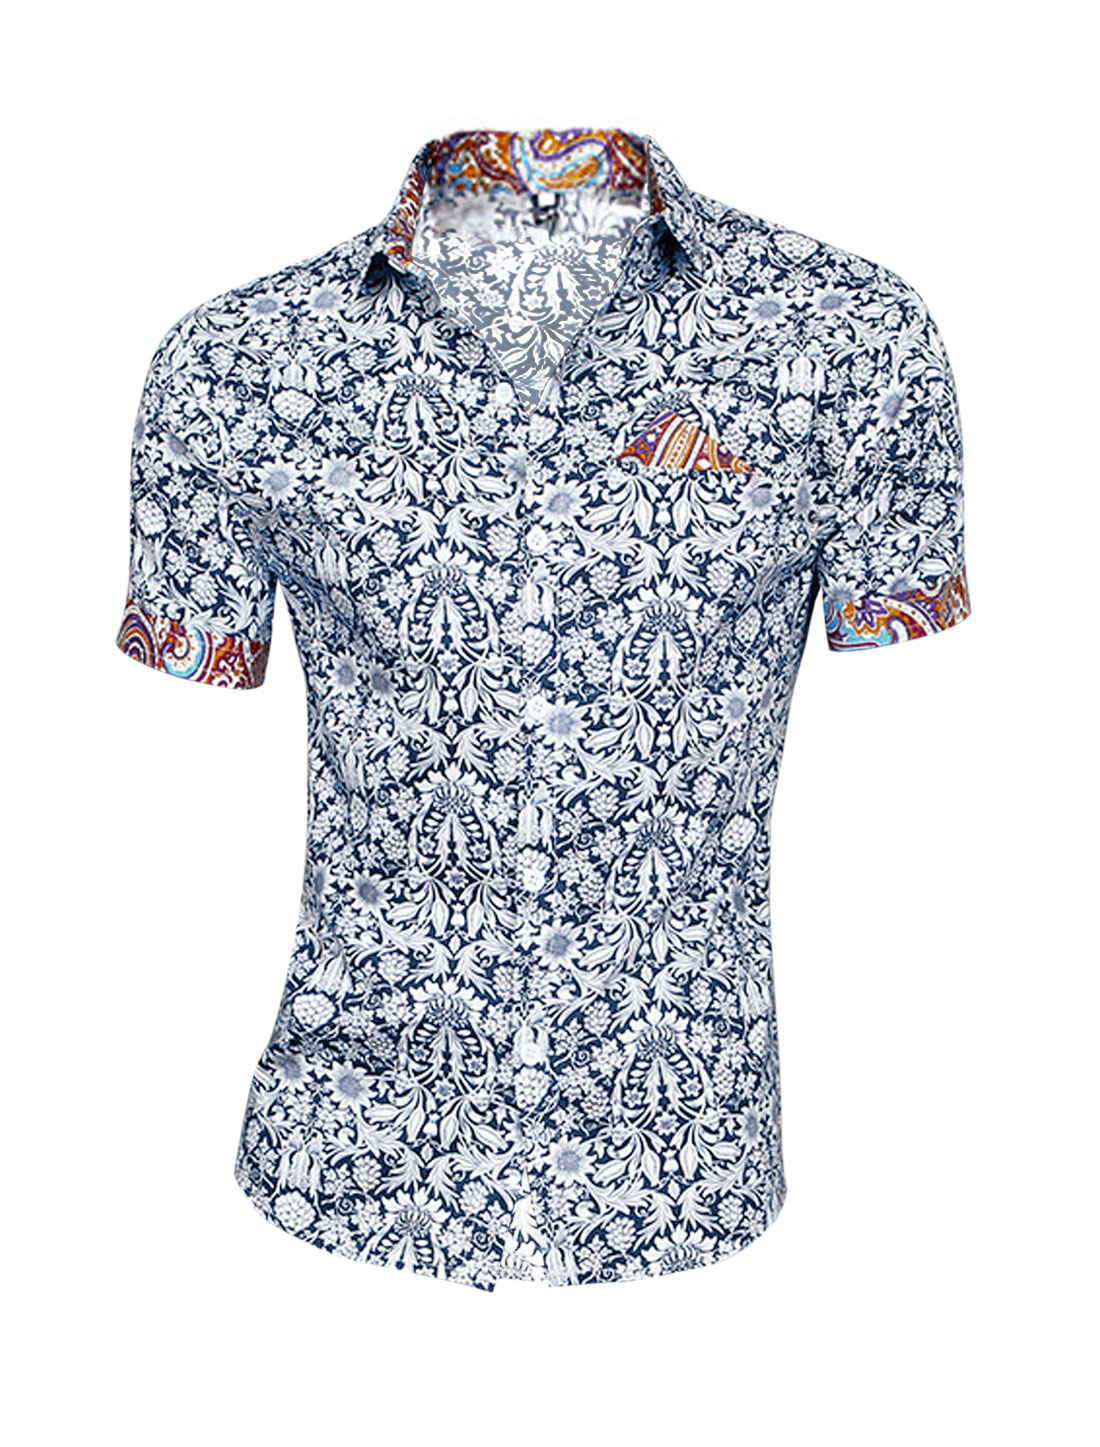 Men Floral Prints Handkerchief Decor Summer Top Navy Blue White M